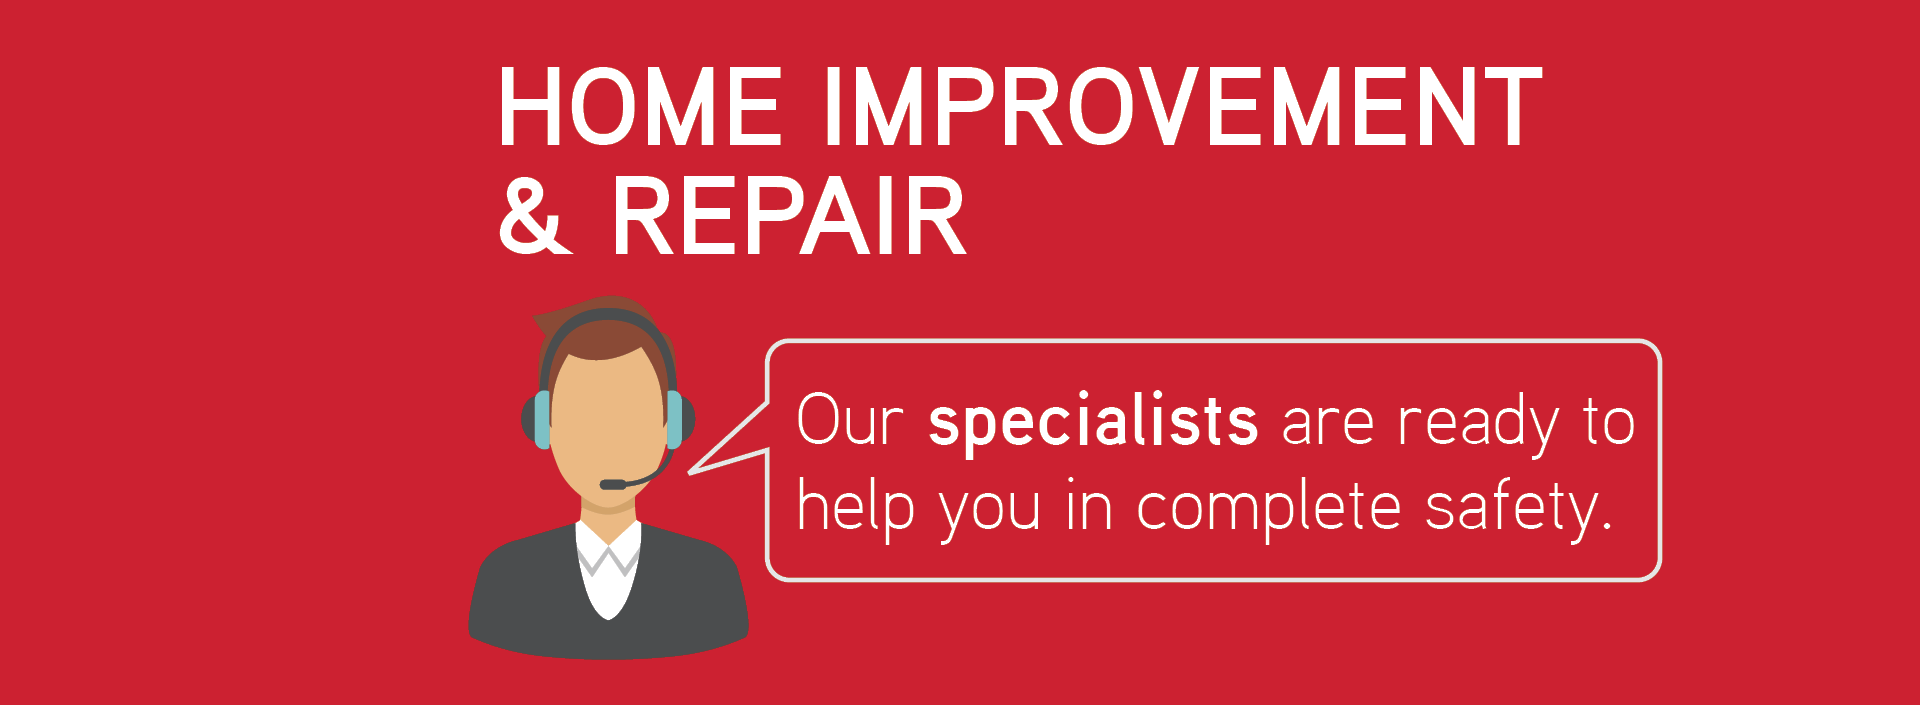 Home improvement & repair. Our specialists are ready to help you in complete safety.